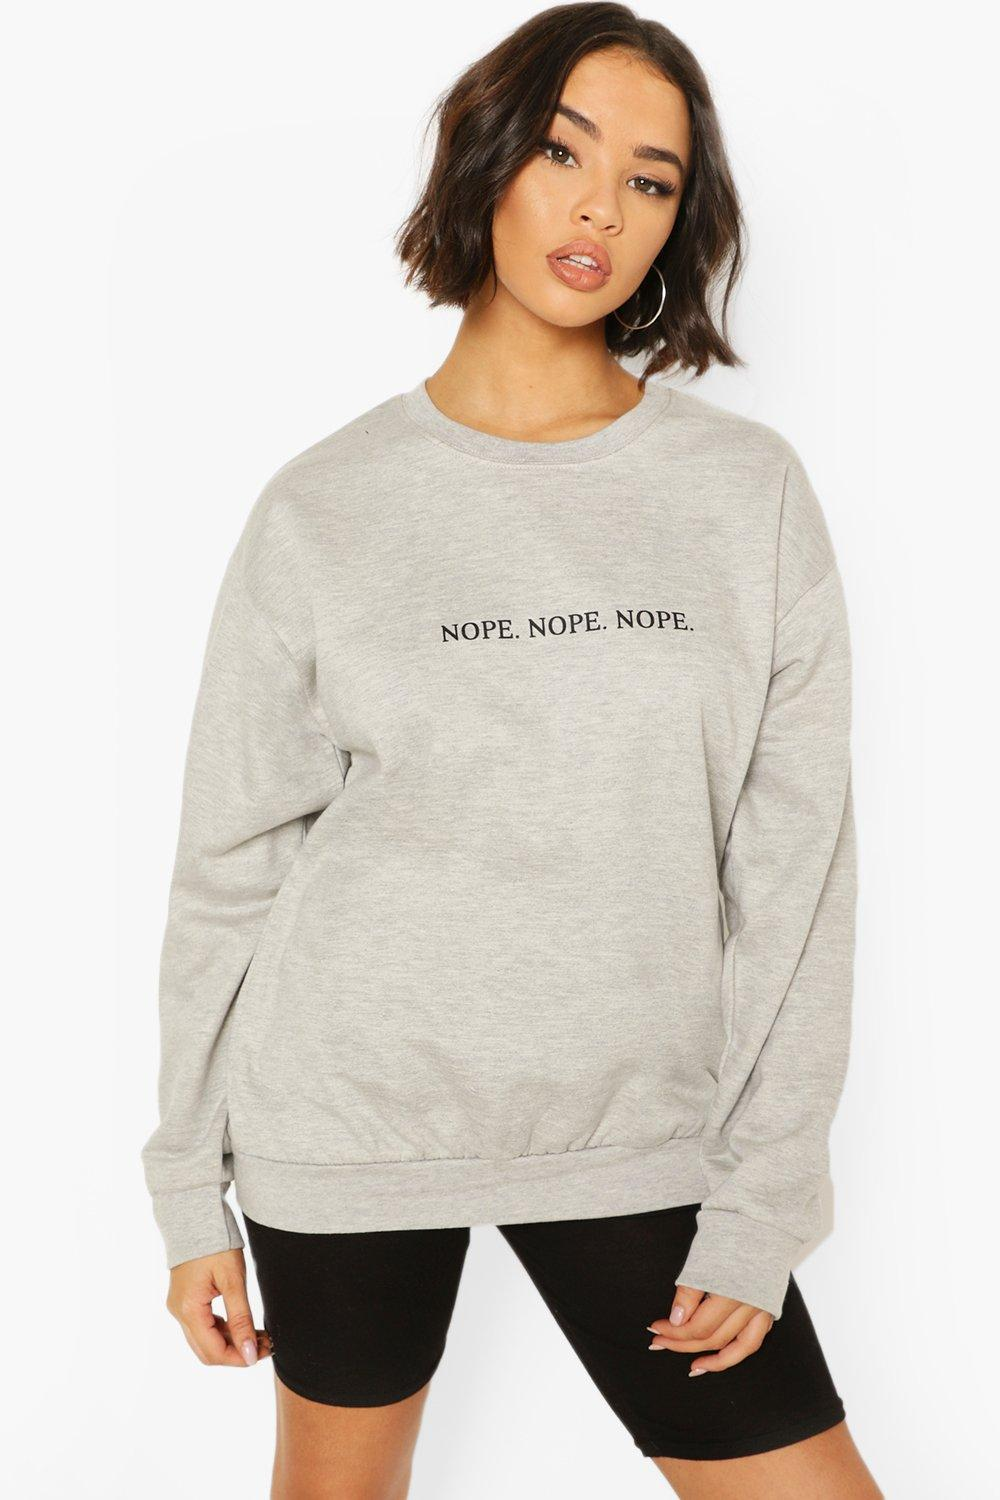 boohoo Womens Nope Slogan Sweat - Grey - L, Grey